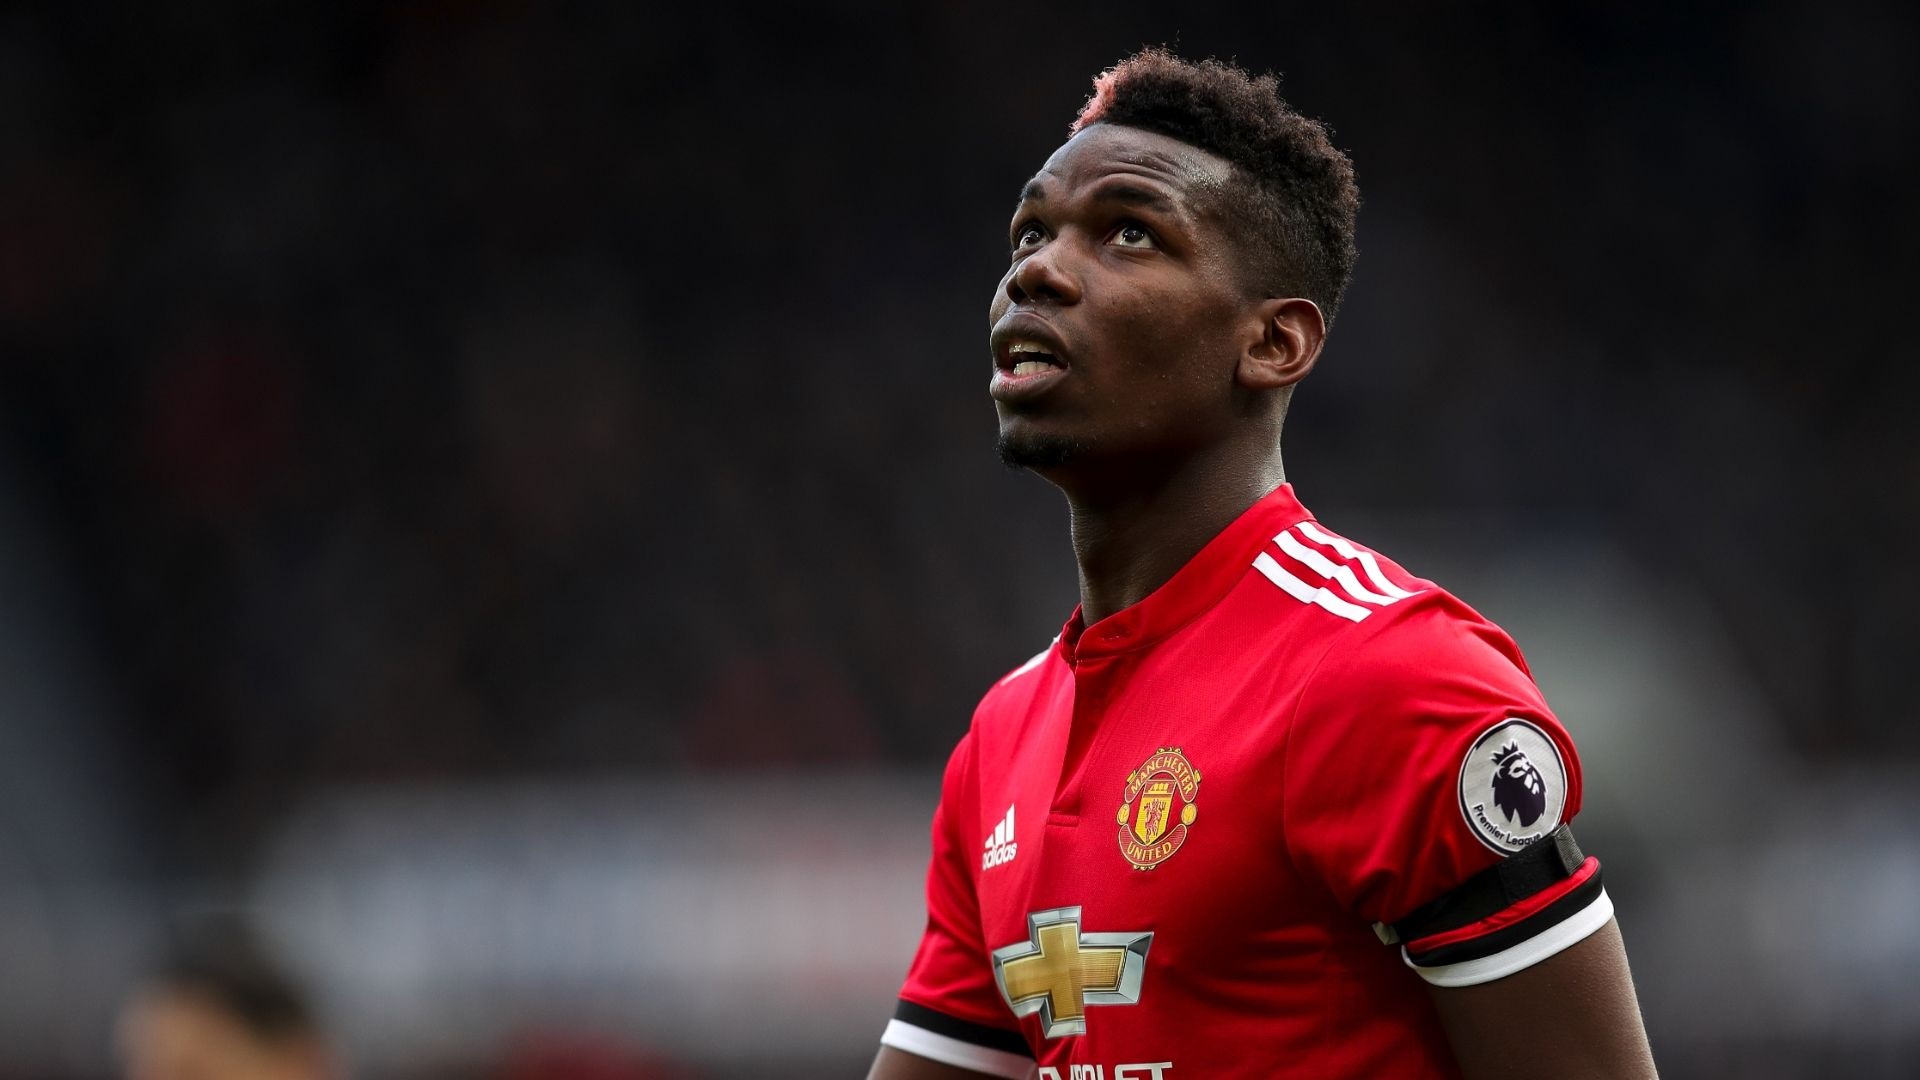 Pogba a doubt to face Sevilla with illness